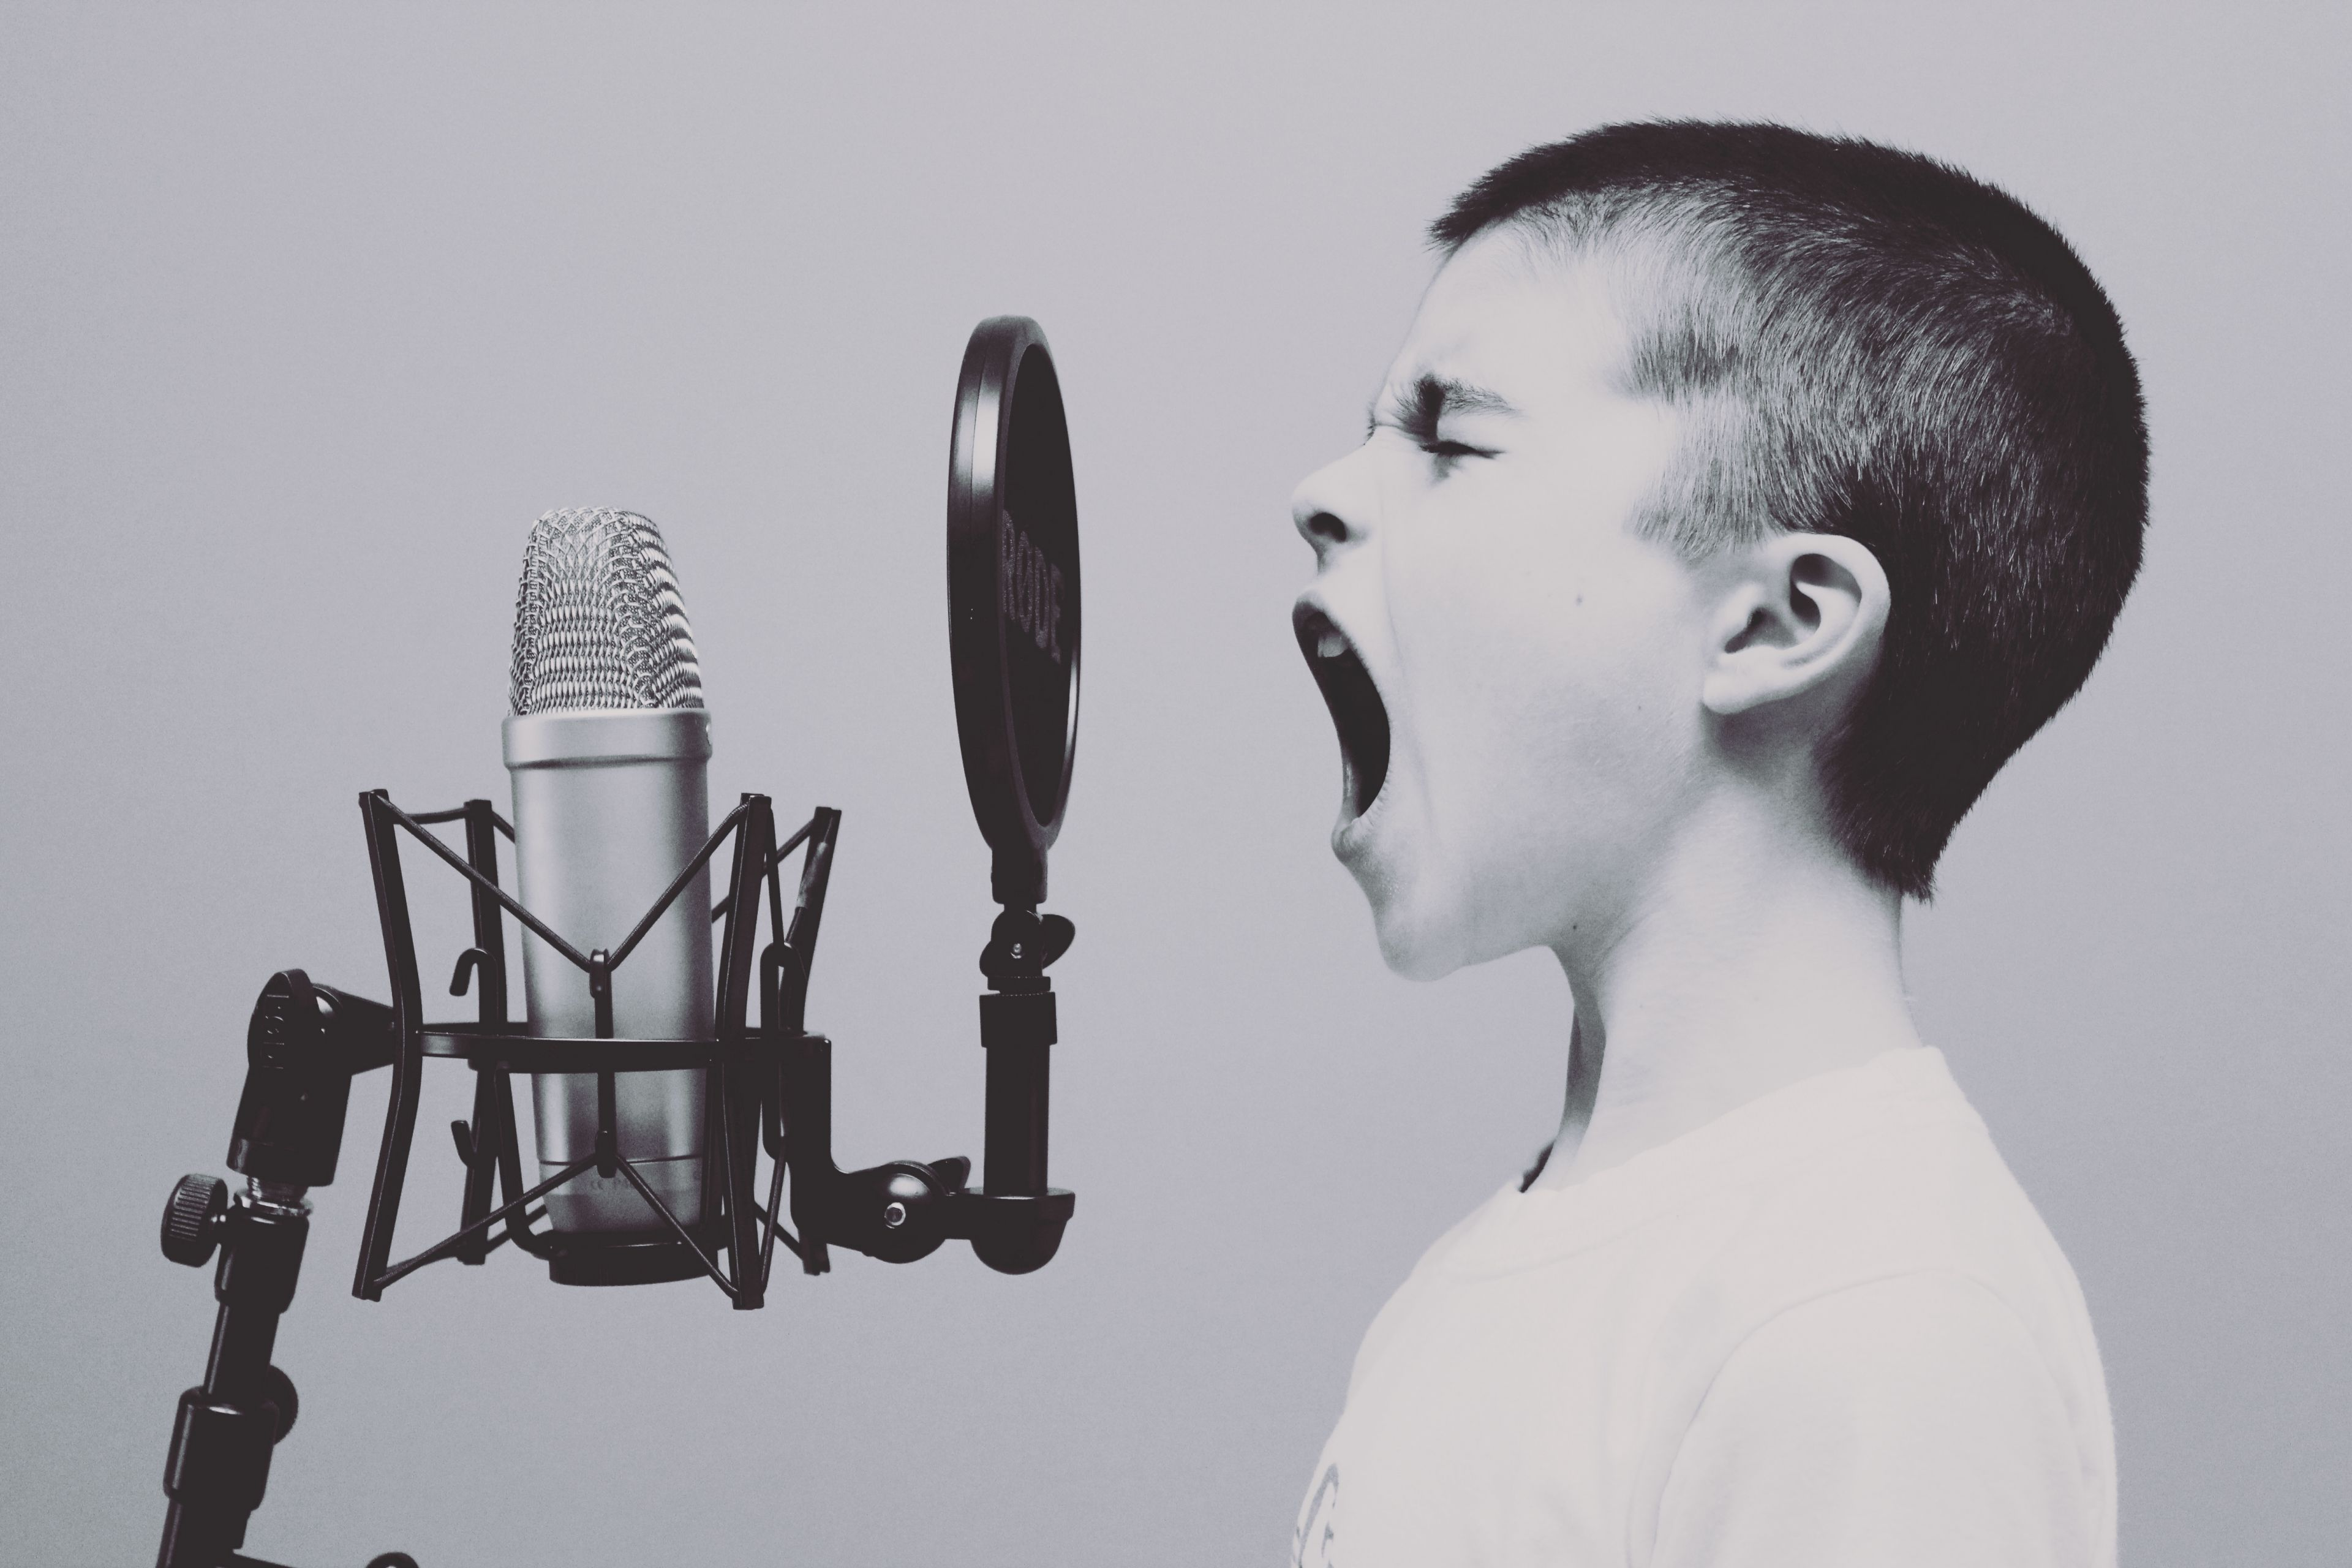 I will record a 200 word VOICEOVER for your project